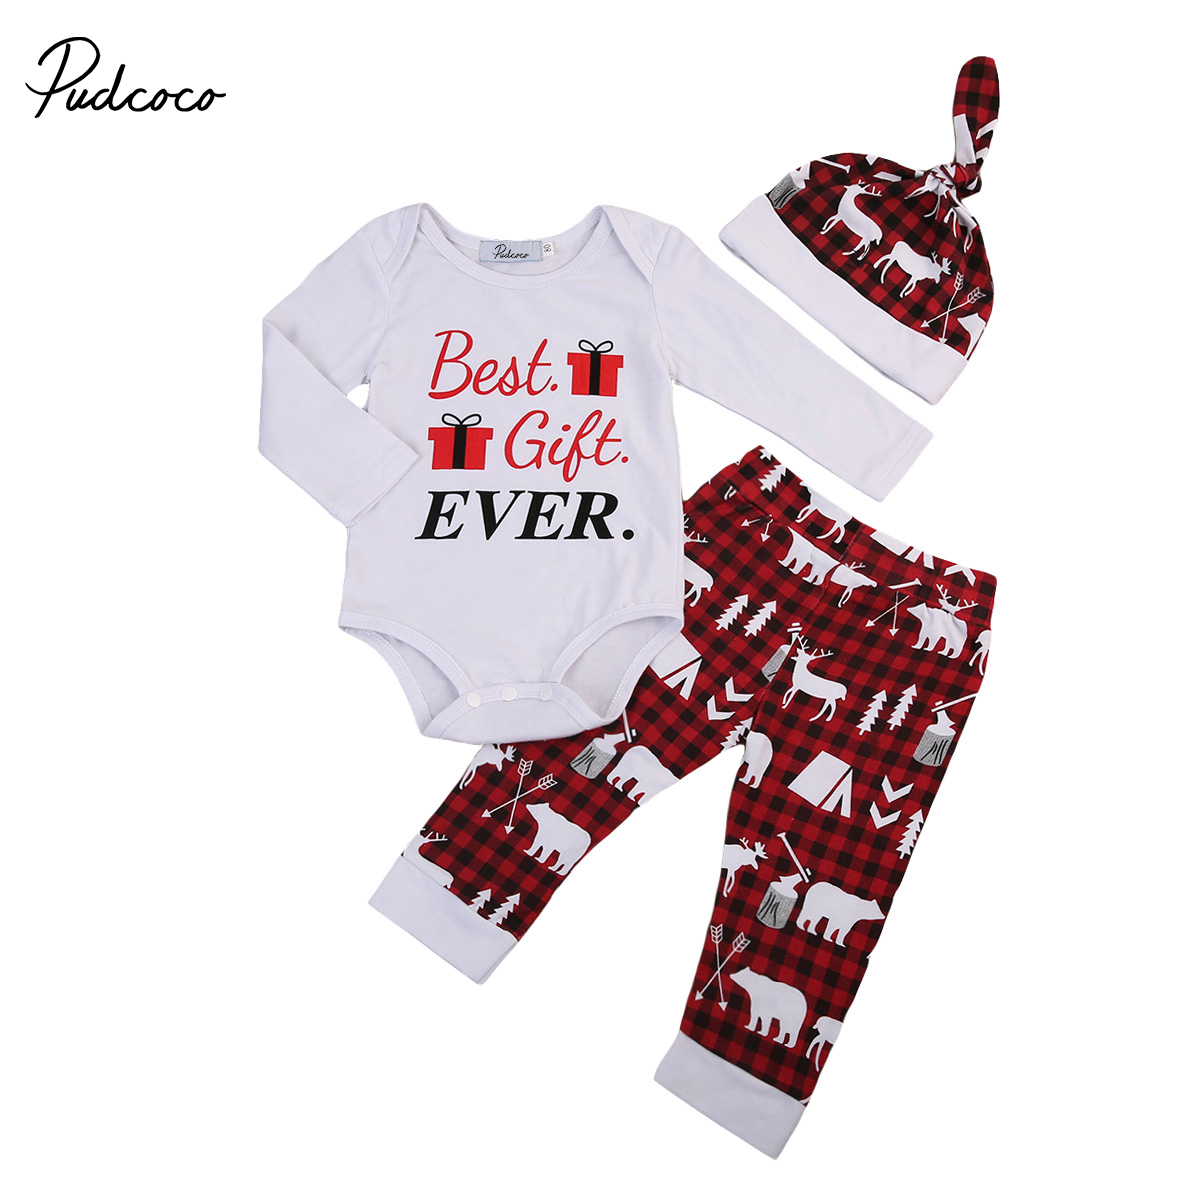 2017 christmas newborn toddler baby boys girls winter clothes long sleeve romper bodysuit pants outfits set 4pcs hat handband 2017 Christmas Newborn Baby Boys Girls Winter Clothes Romper Jumpsuit Plaid Pants Legging Hat Outfits Best Gift Ever 0-24M